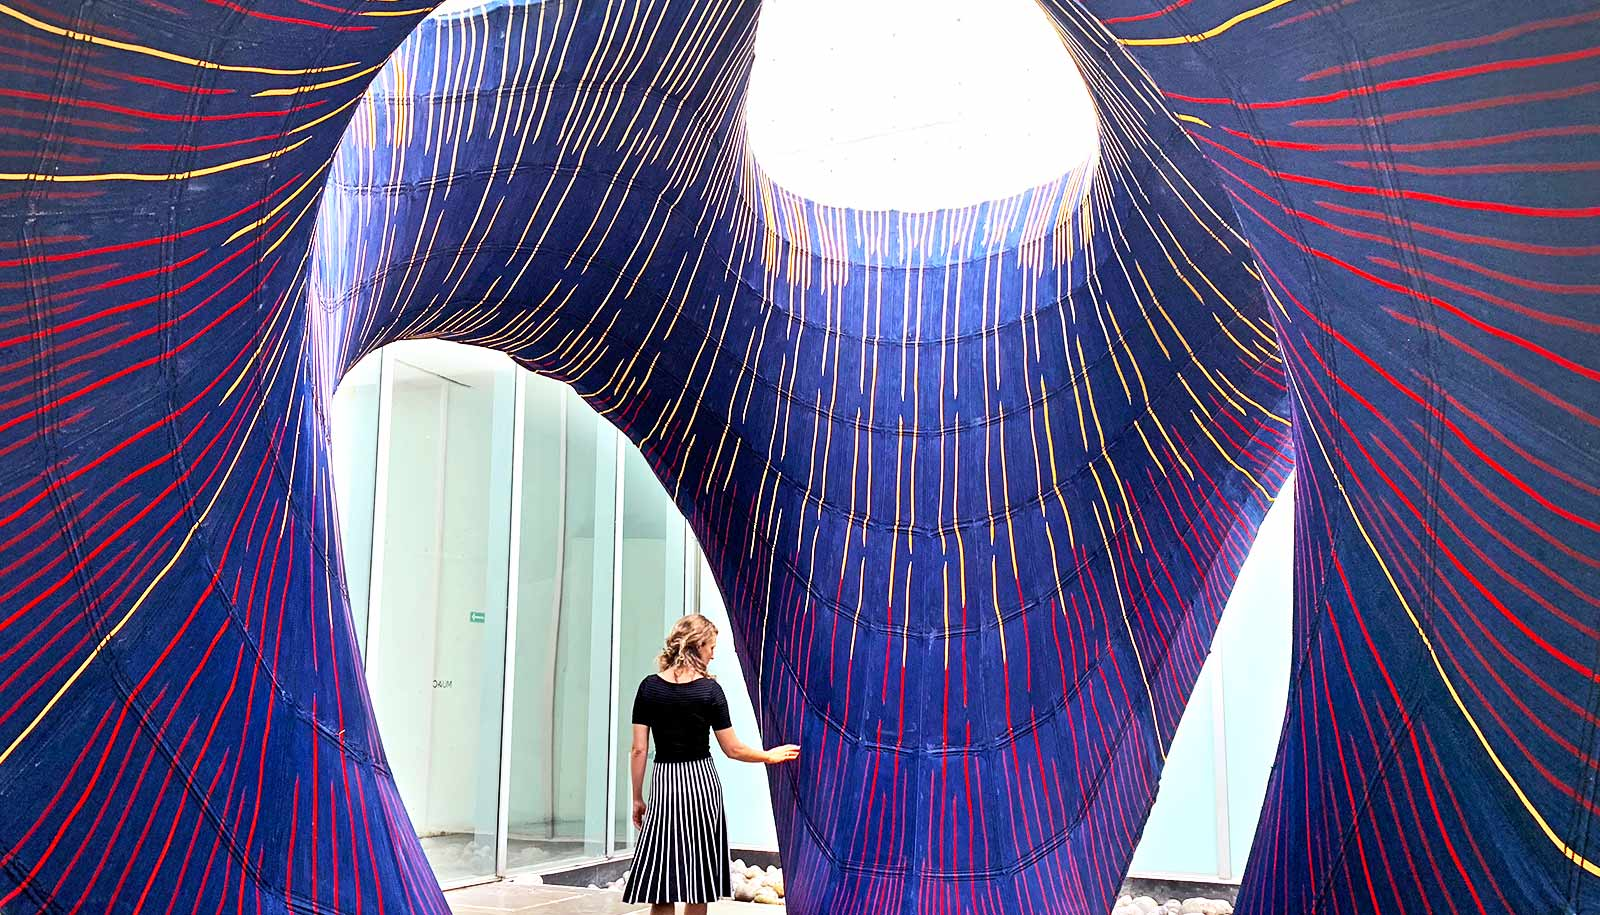 Knitted shell holds up 5-ton curved concrete structure